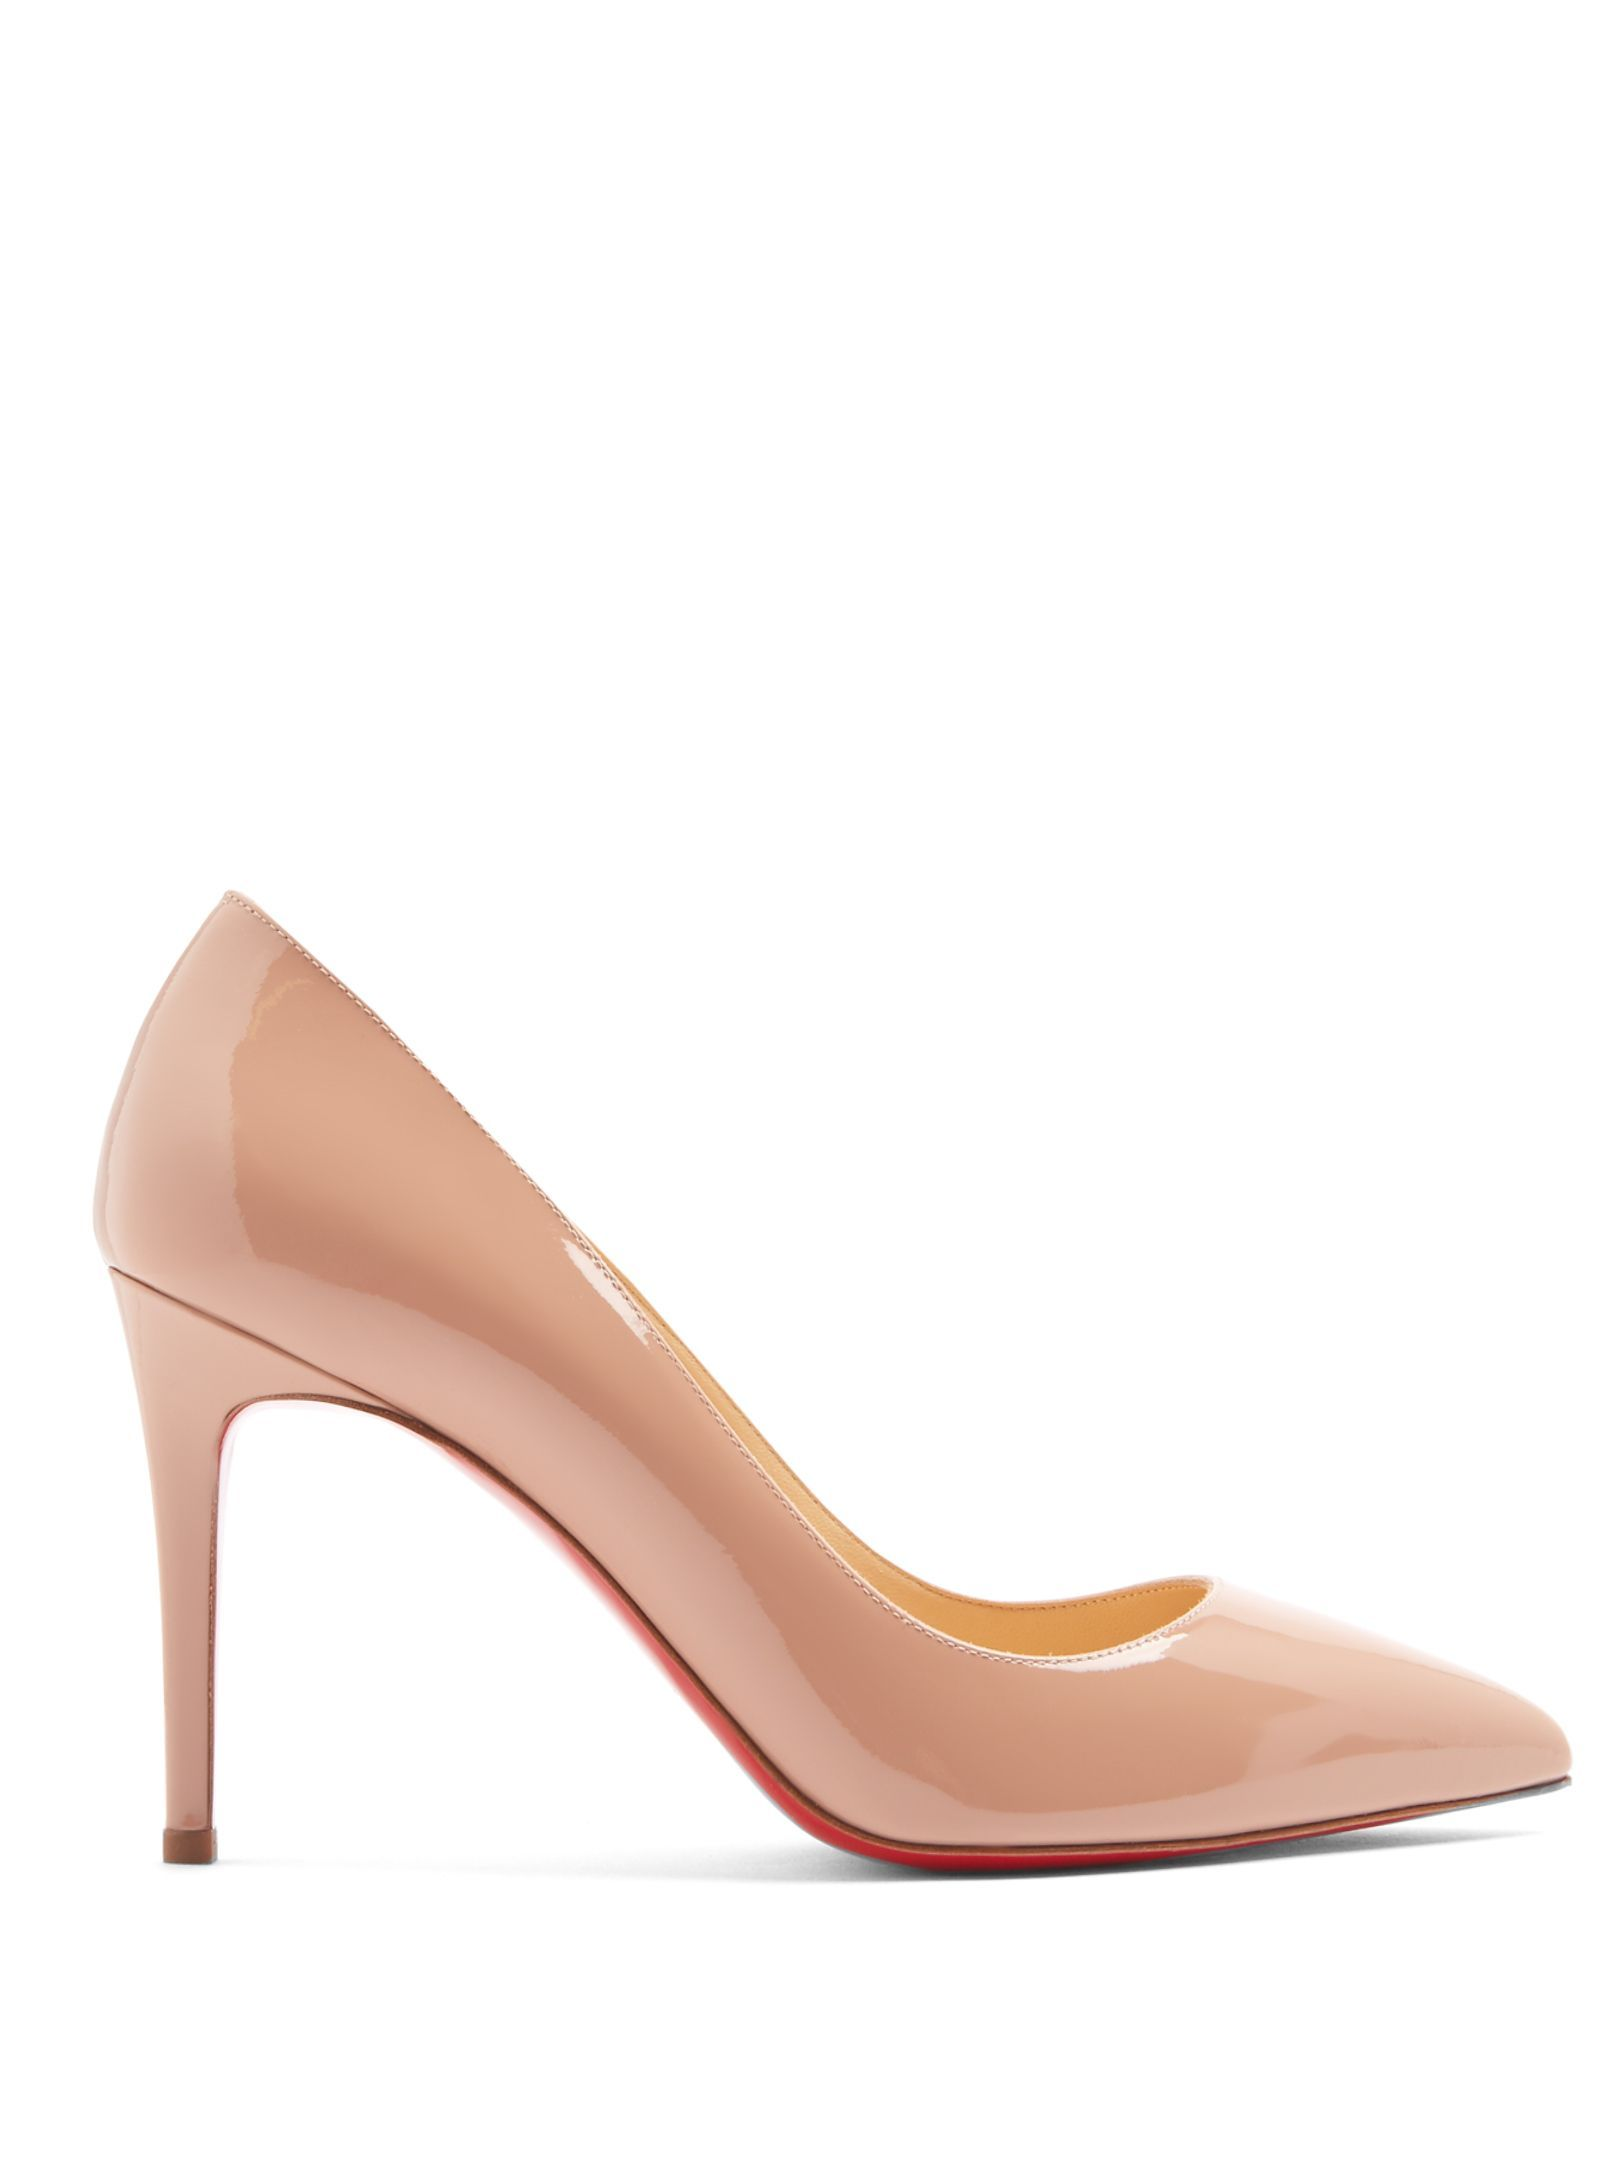 bcb1872e3e83 Click here to buy Christian Louboutin Pigalle 85mm patent-leather pumps at  MATCHESFASHION.COM